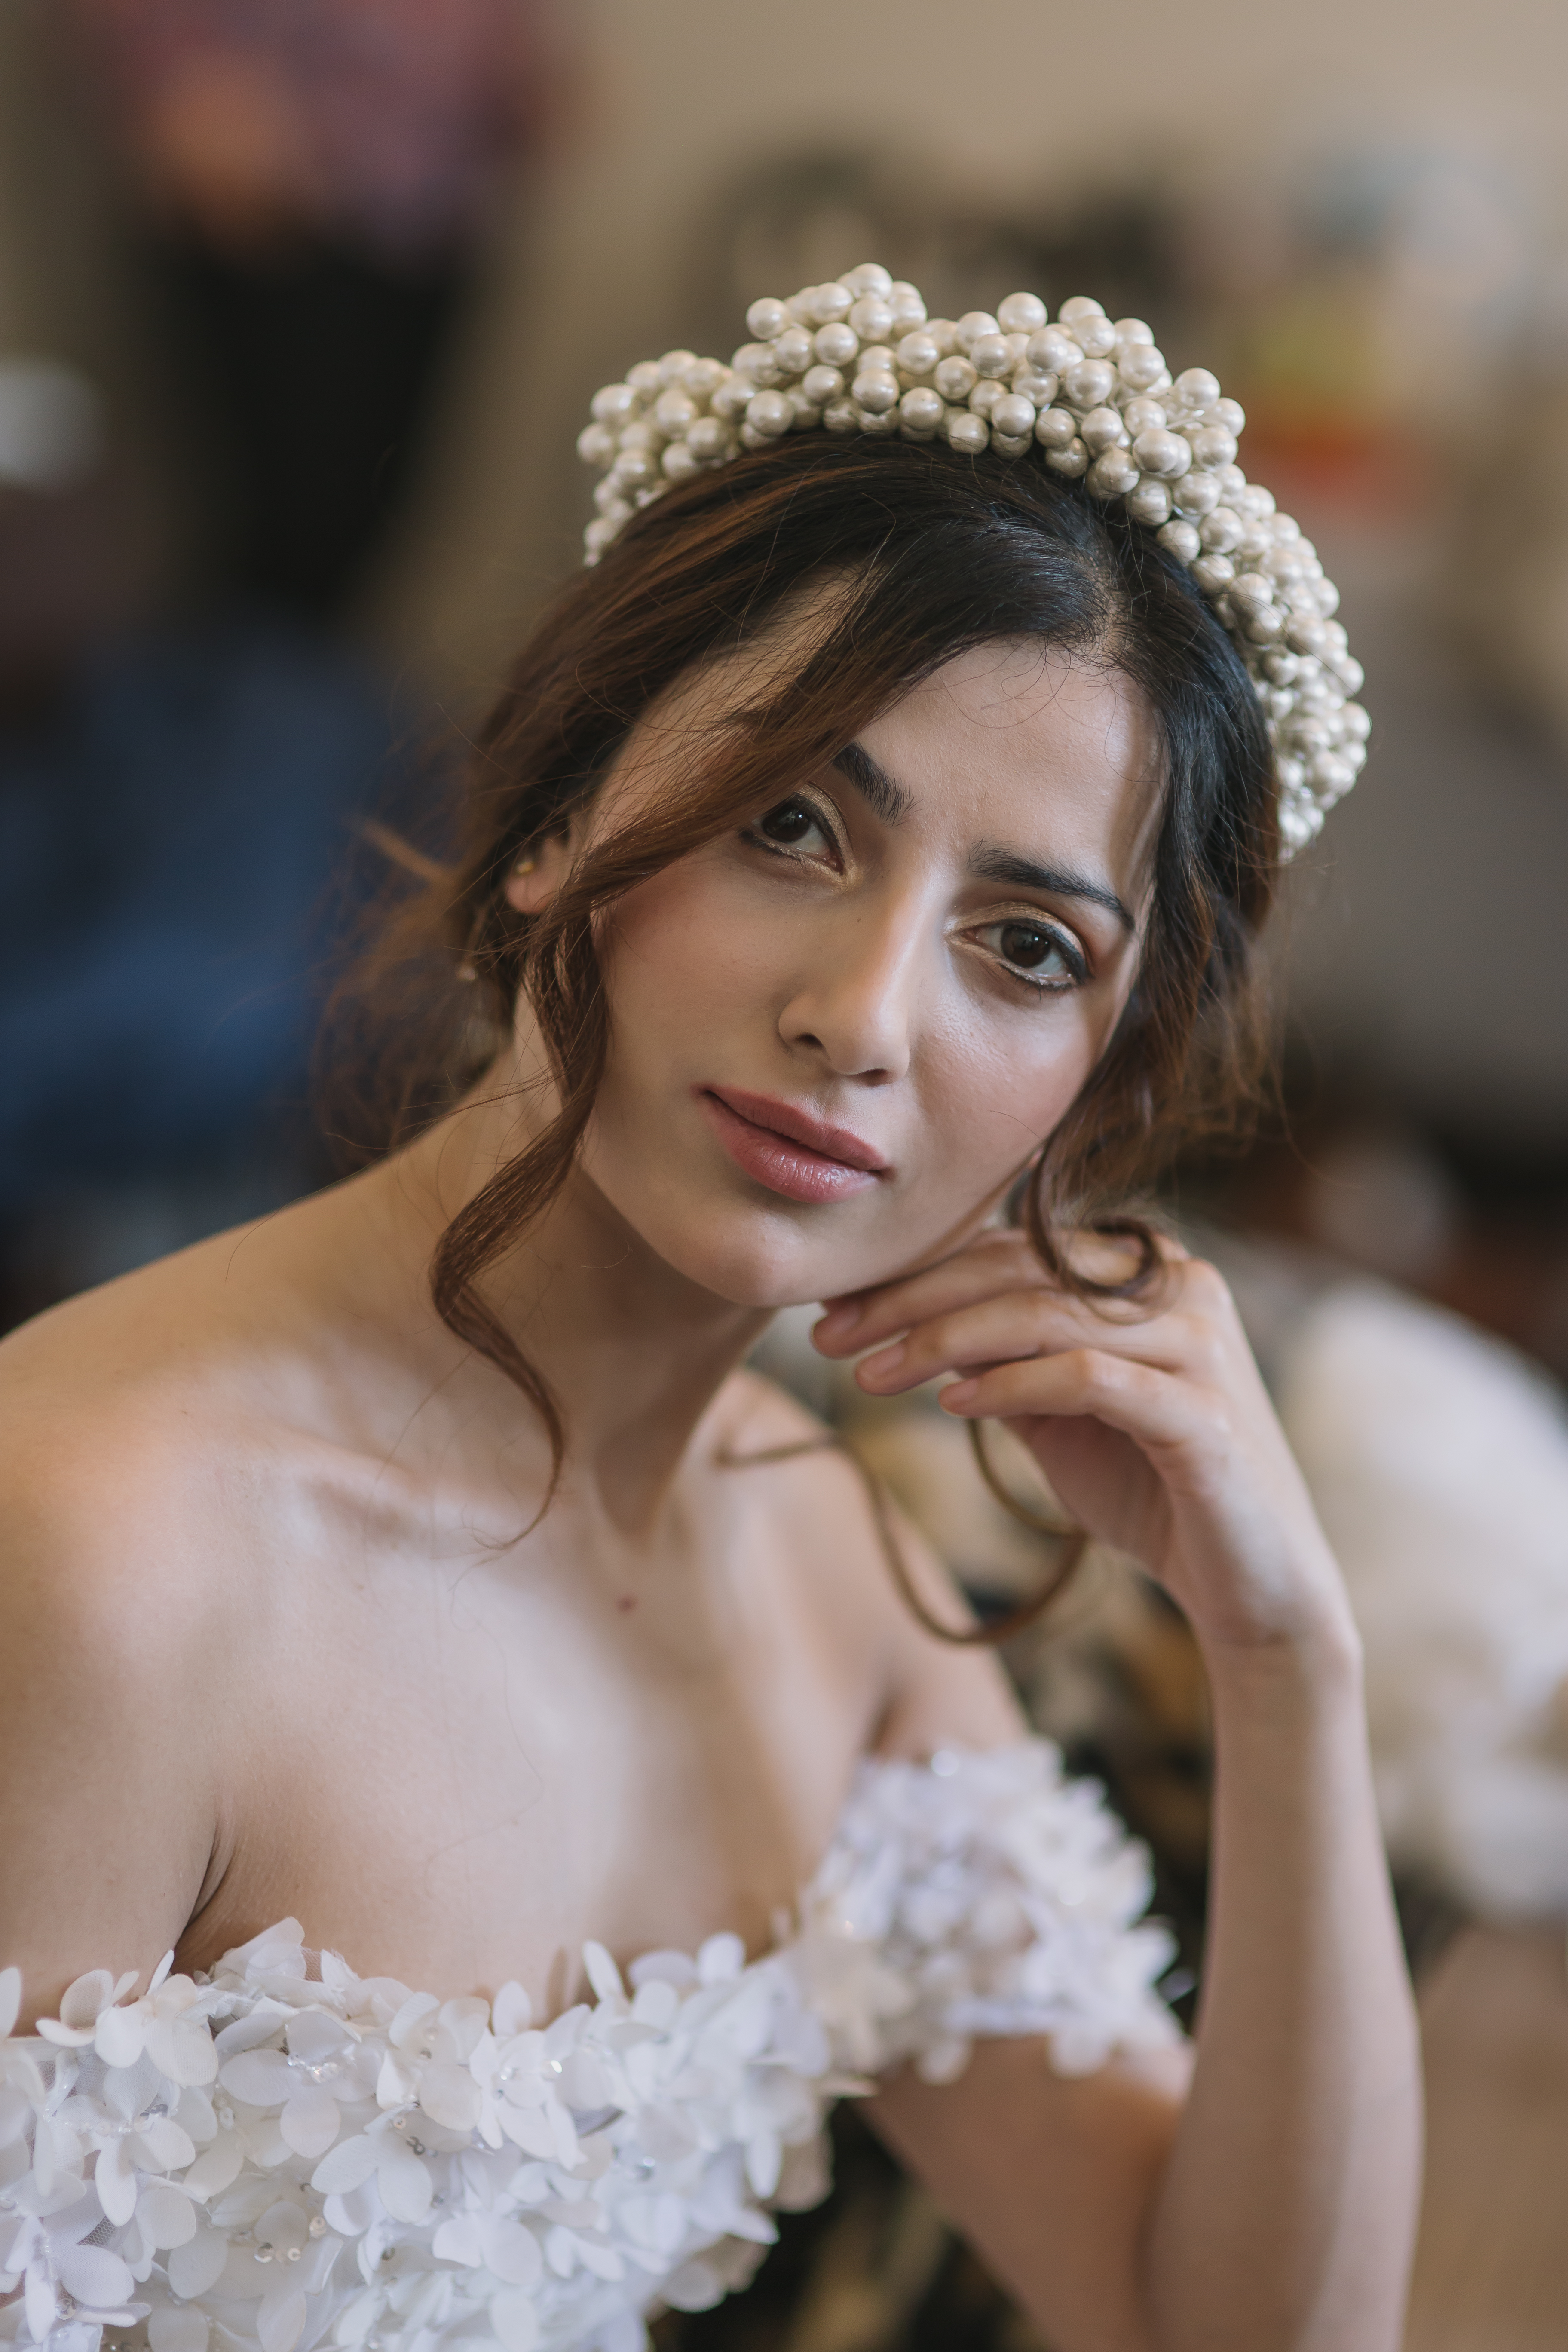 British Bride couture runway show and editorial photoshoot